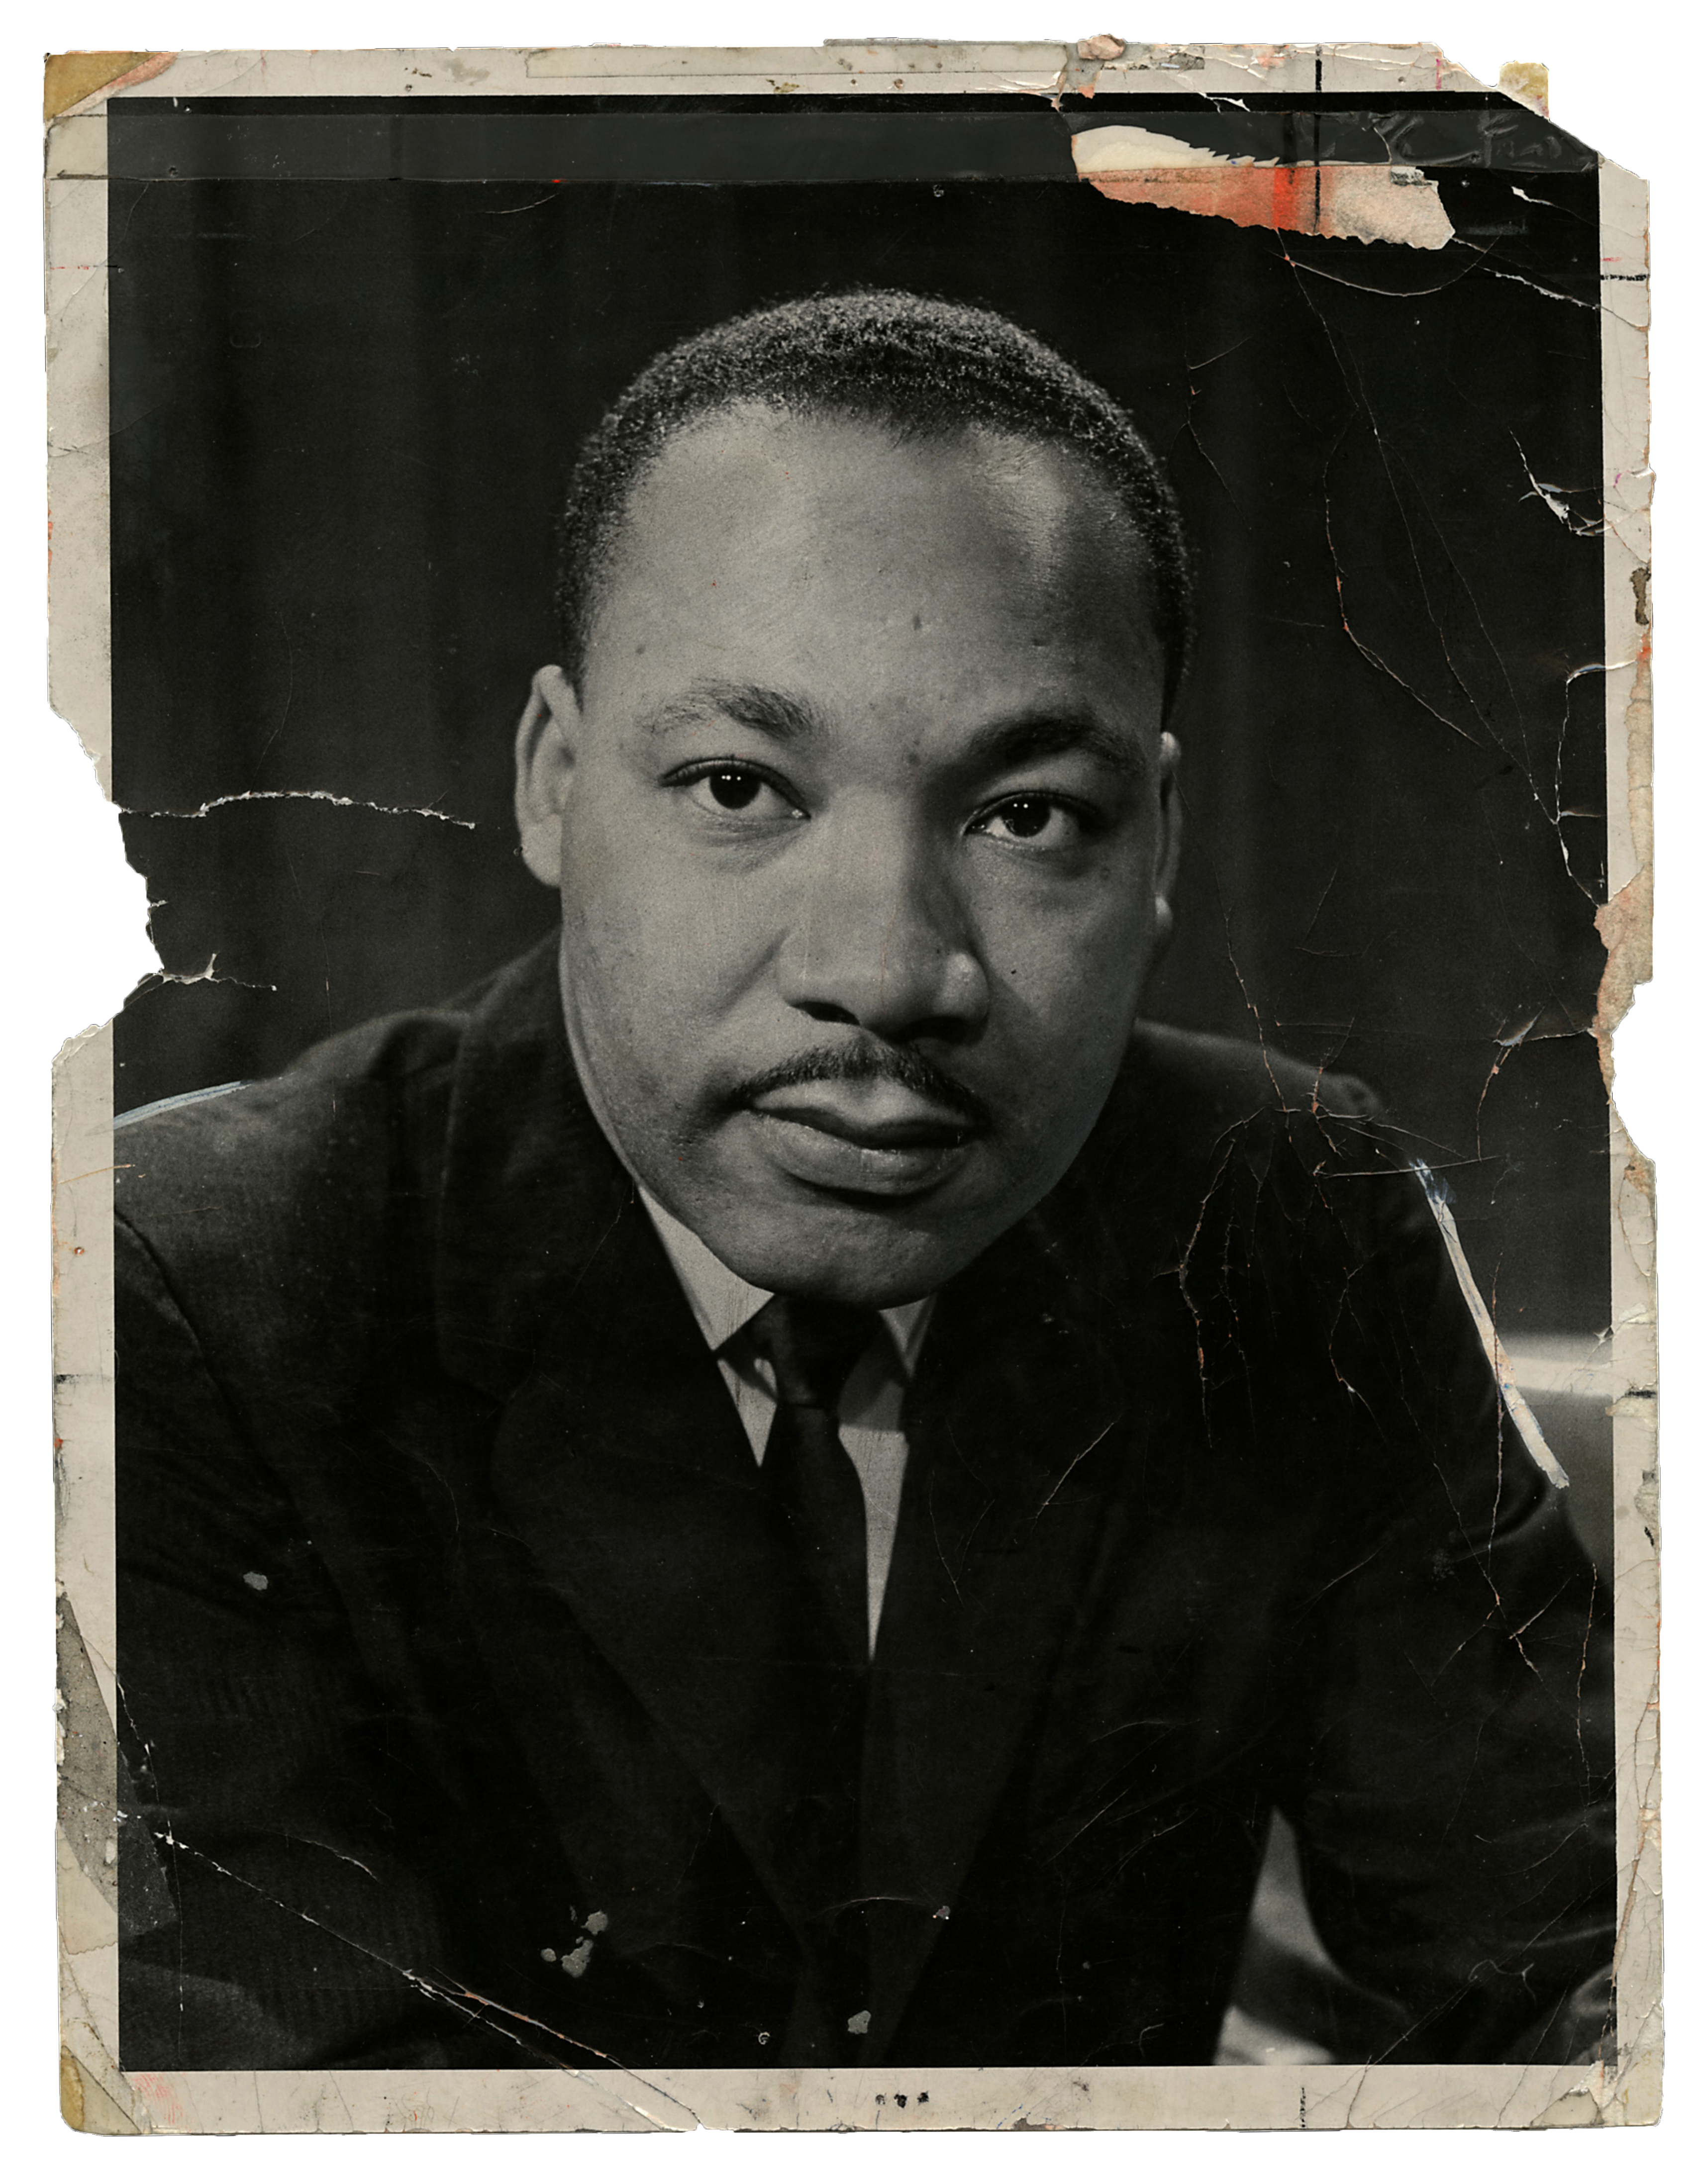 Dr. Martin Luther King Jr on June 30, 1963. Photo by Allyn Baum/The New York Times